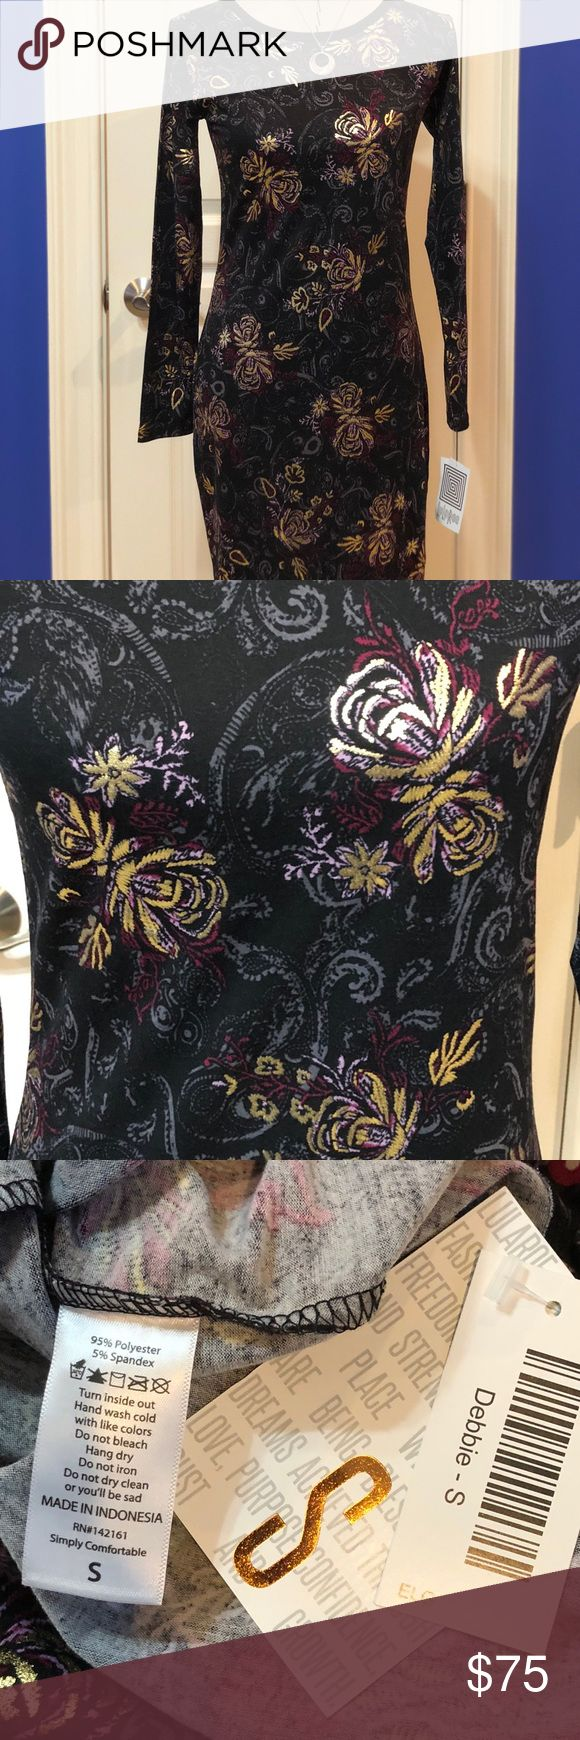 LuLaRoe BNWT S ELEGANT DEBBIE Simply beautiful BNWT S ELEGANT DEBBIE! Gorgeous.   Please remember Poshmark wants 20%; I am not a consultant - I paid retail or more - I just love making outfits and have a LuLa addiction. These are from a smoke free/pet free home. If you want a lower price, I'm happy to send a PayPal invoice.... LuLaRoe Dresses